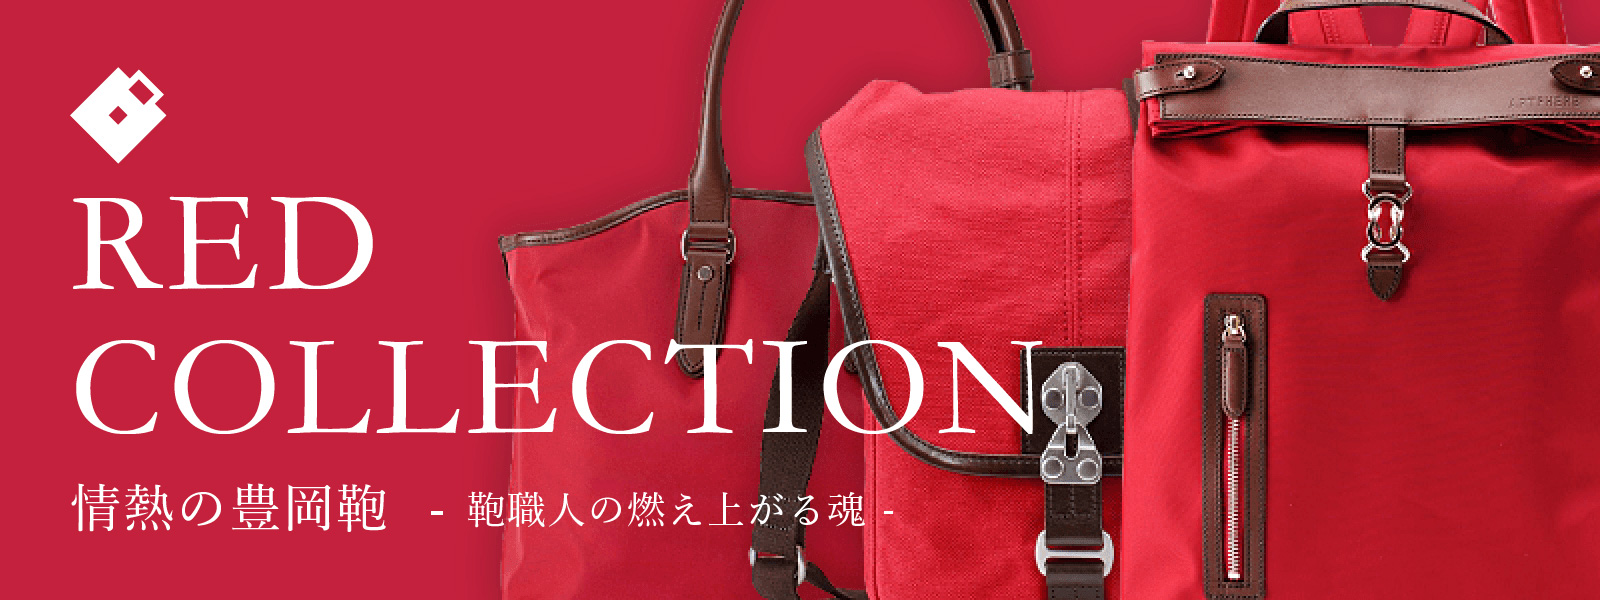 RED COLLECTION 情熱の豊岡鞄  - 鞄職人の燃え上がる魂 -